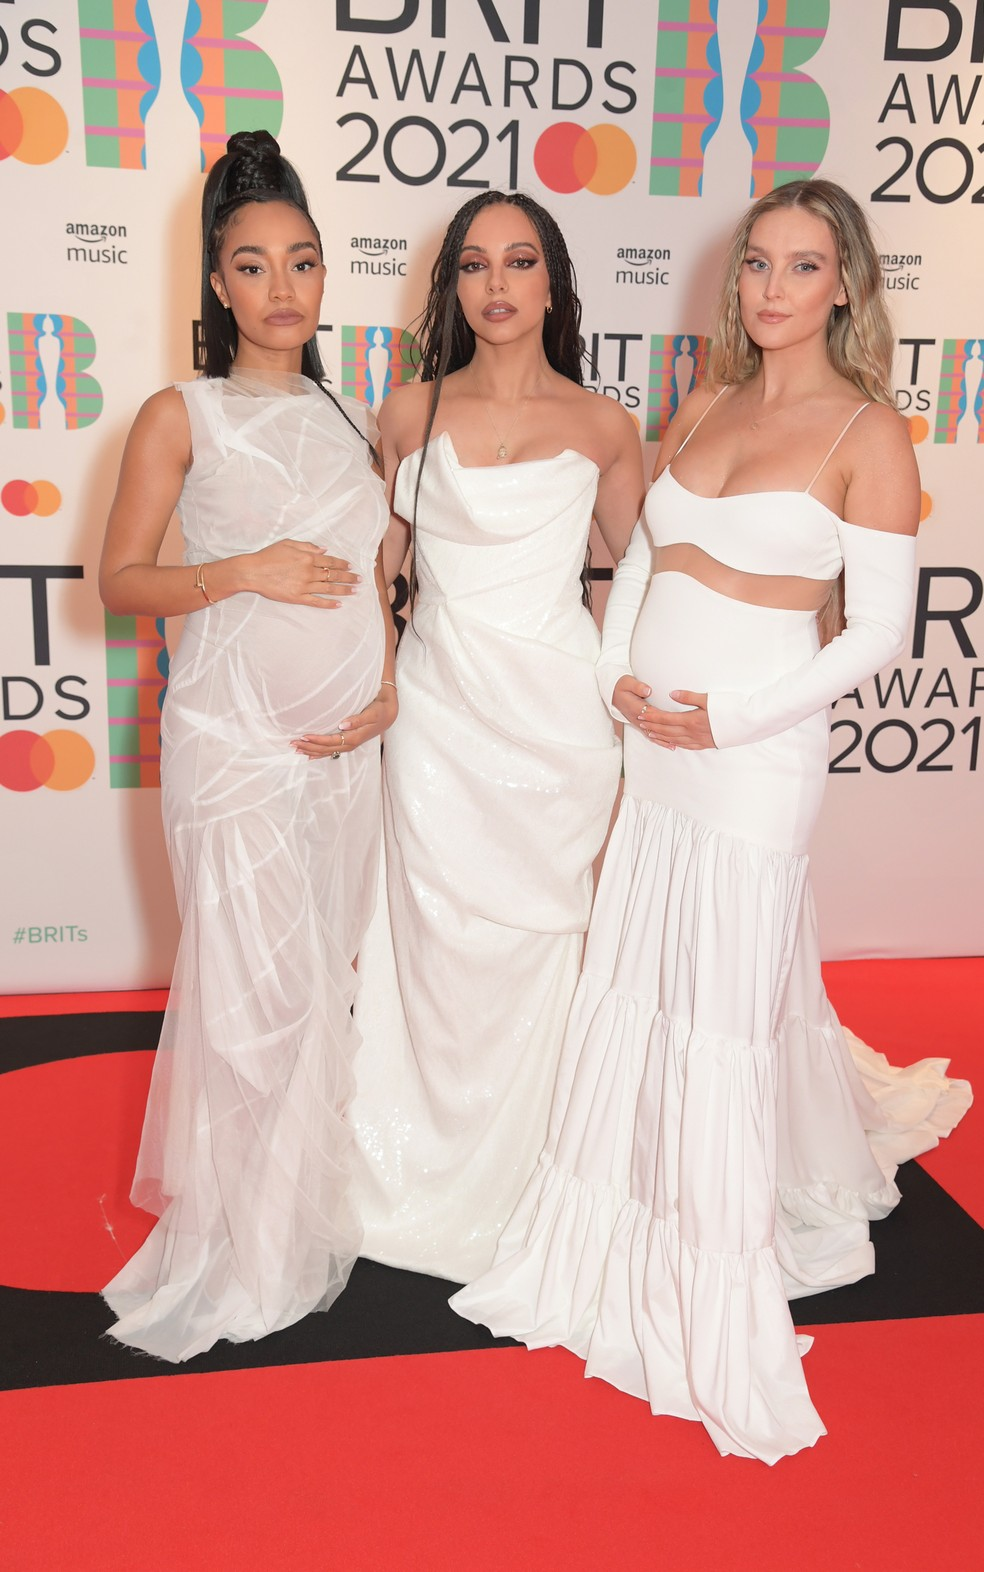 leigh anne pinnock jade thirlwall e perrie edwards do little mix no brit awards 2021 1